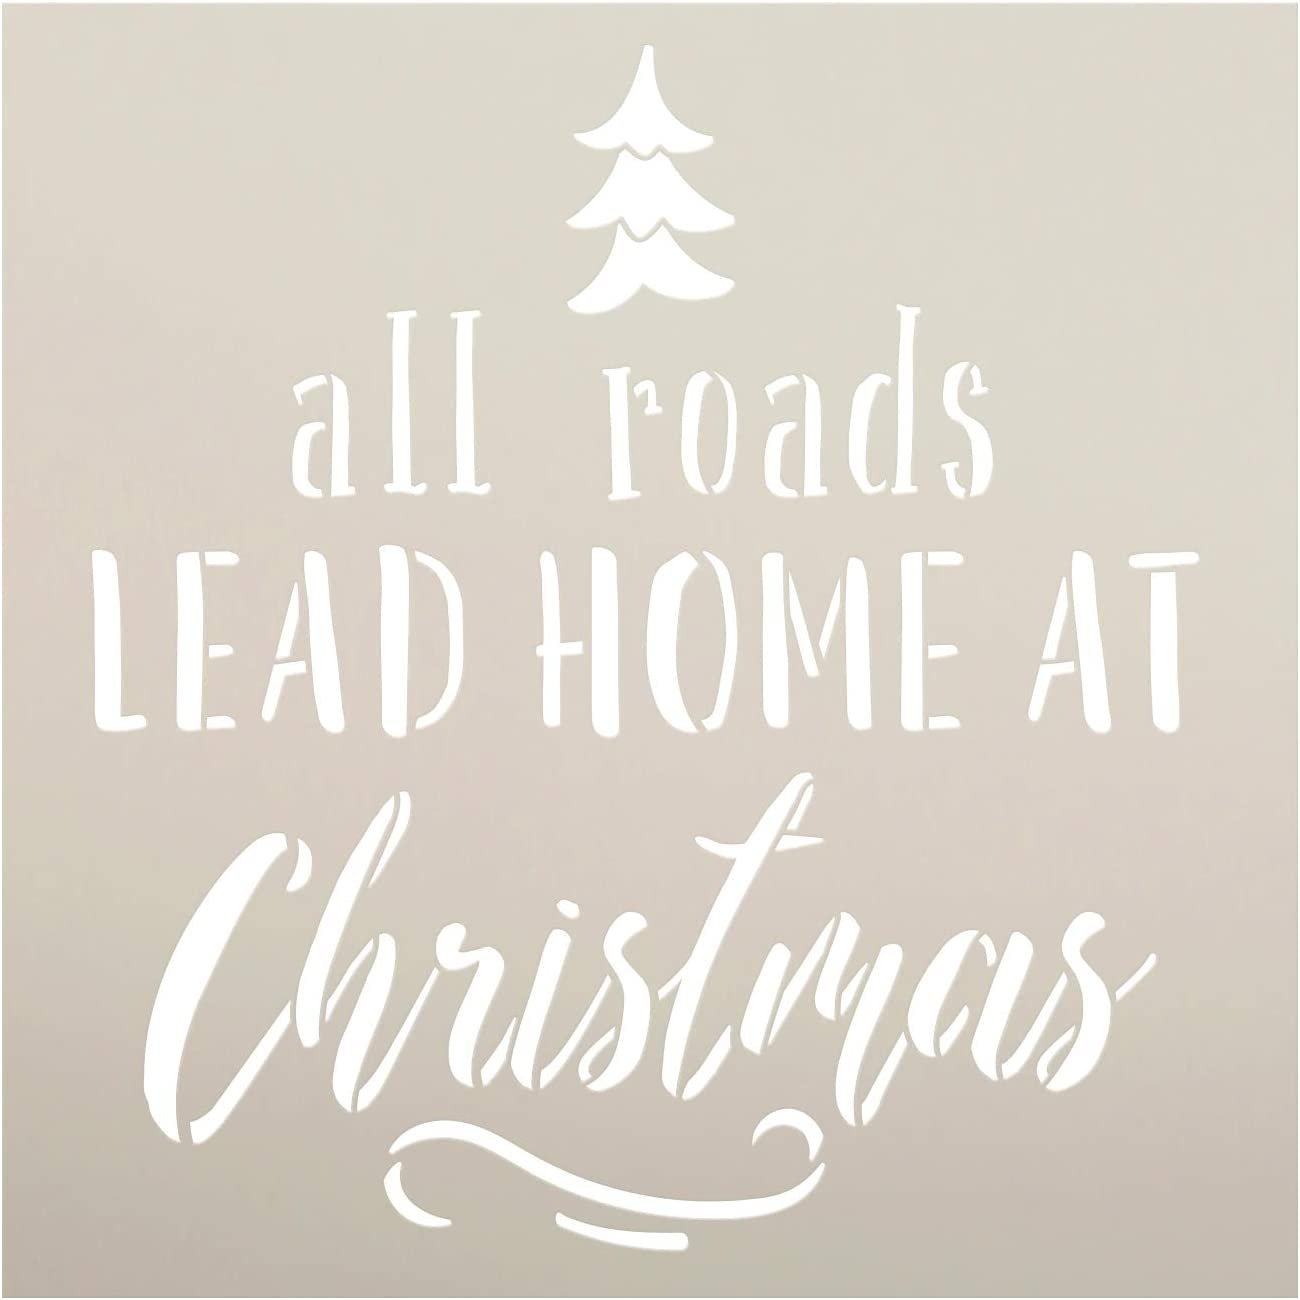 Roads Lead Home at Christmas Stencil by StudioR12 | DIY Holiday Tree Home Decor | Craft and Paint Wood Sign | Reusable Mylar Template | Winter Season Gift | Select Size